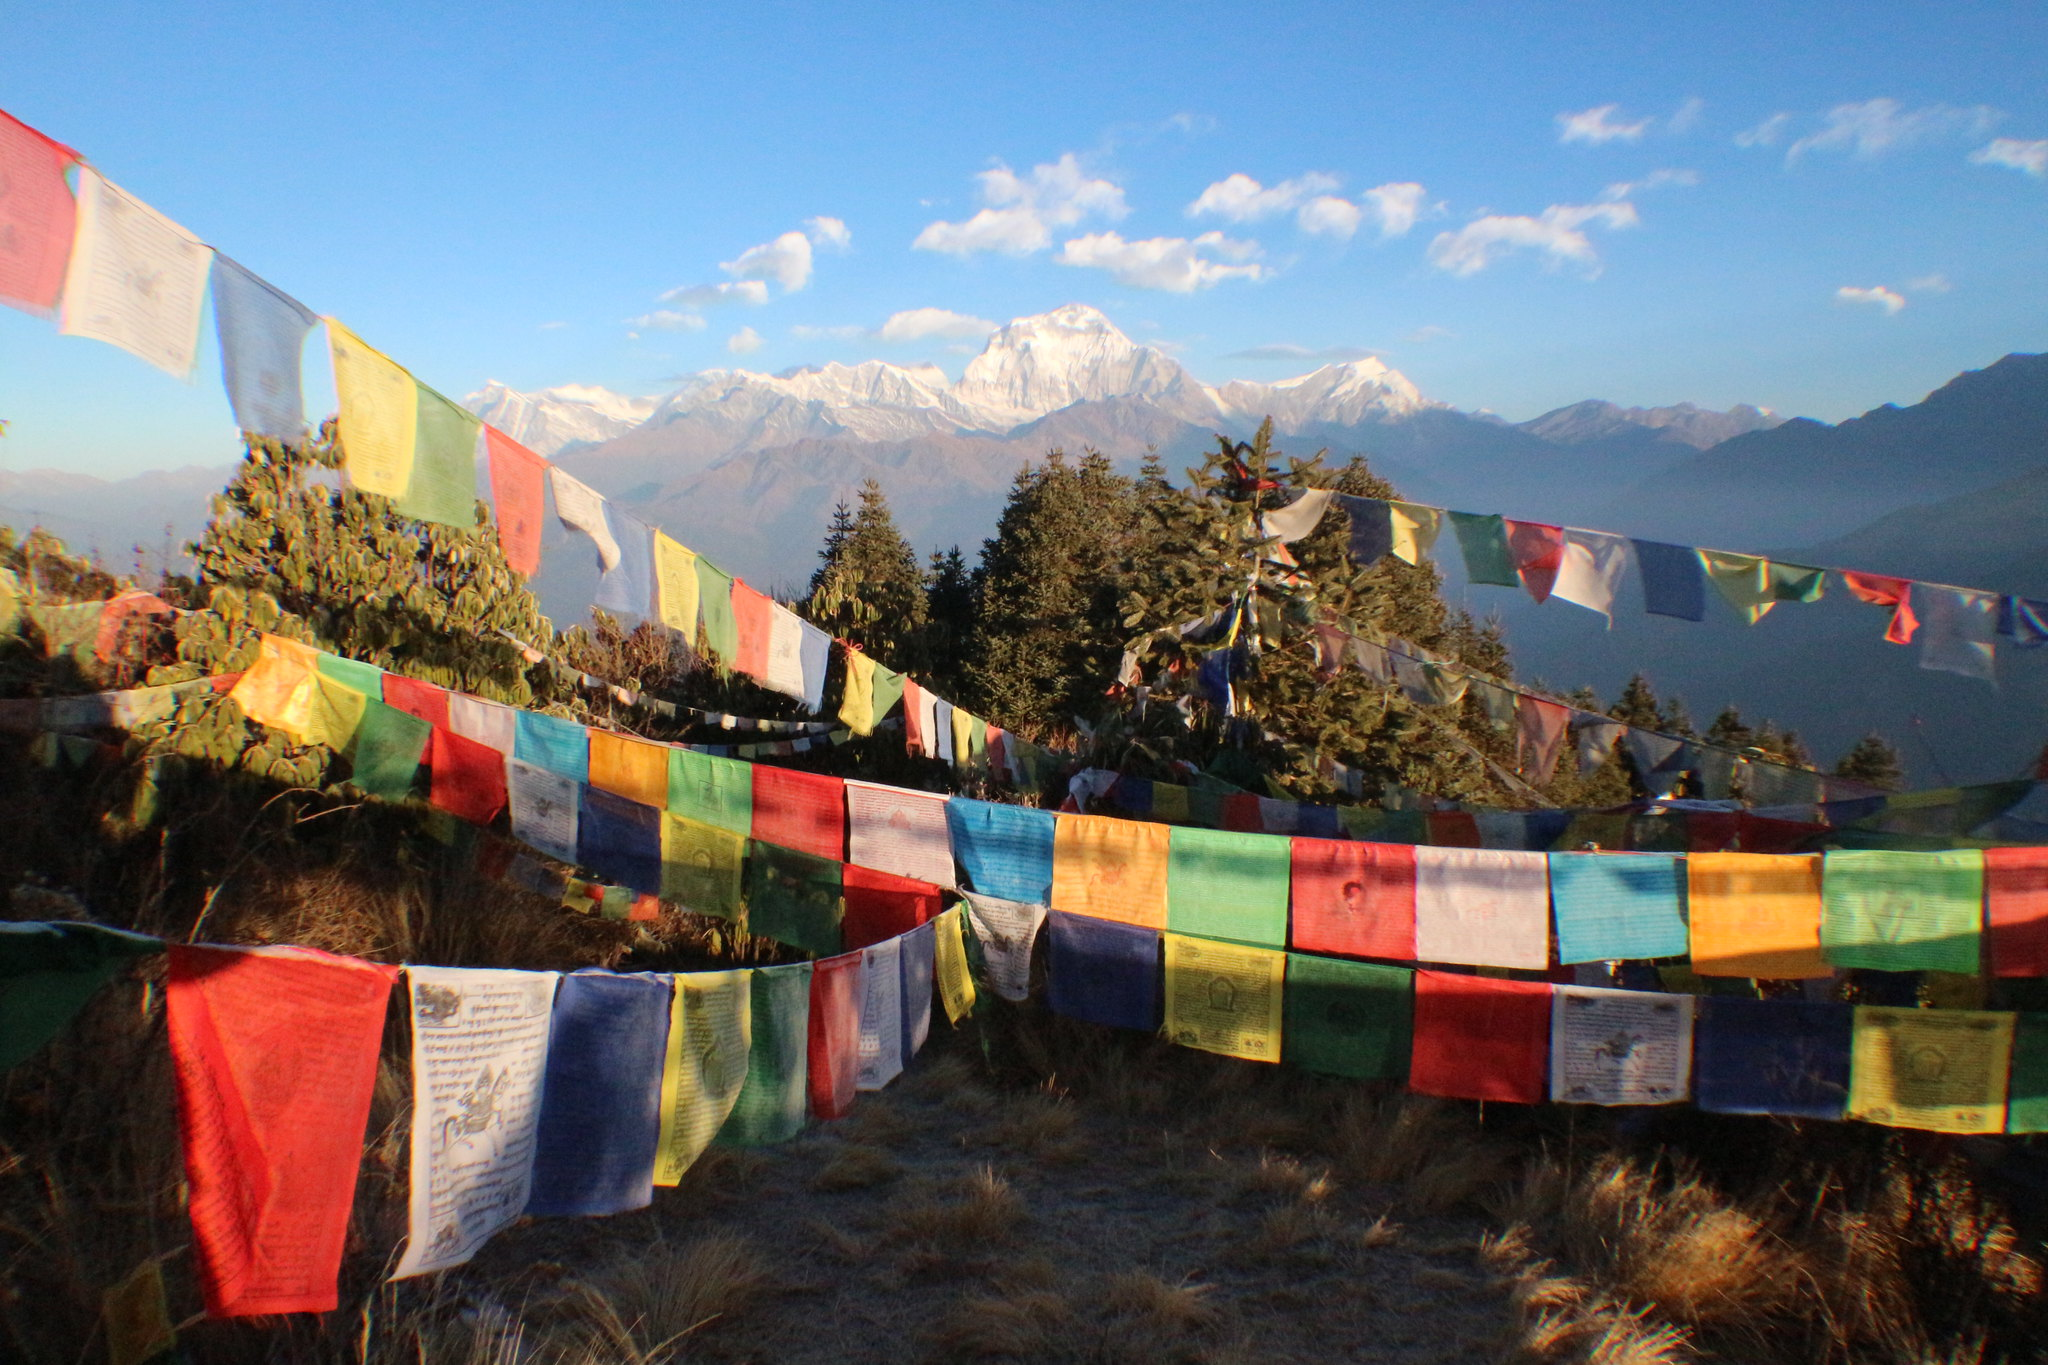 Why the Nayapul to Ghandruk Trek is Ideal for Beginners